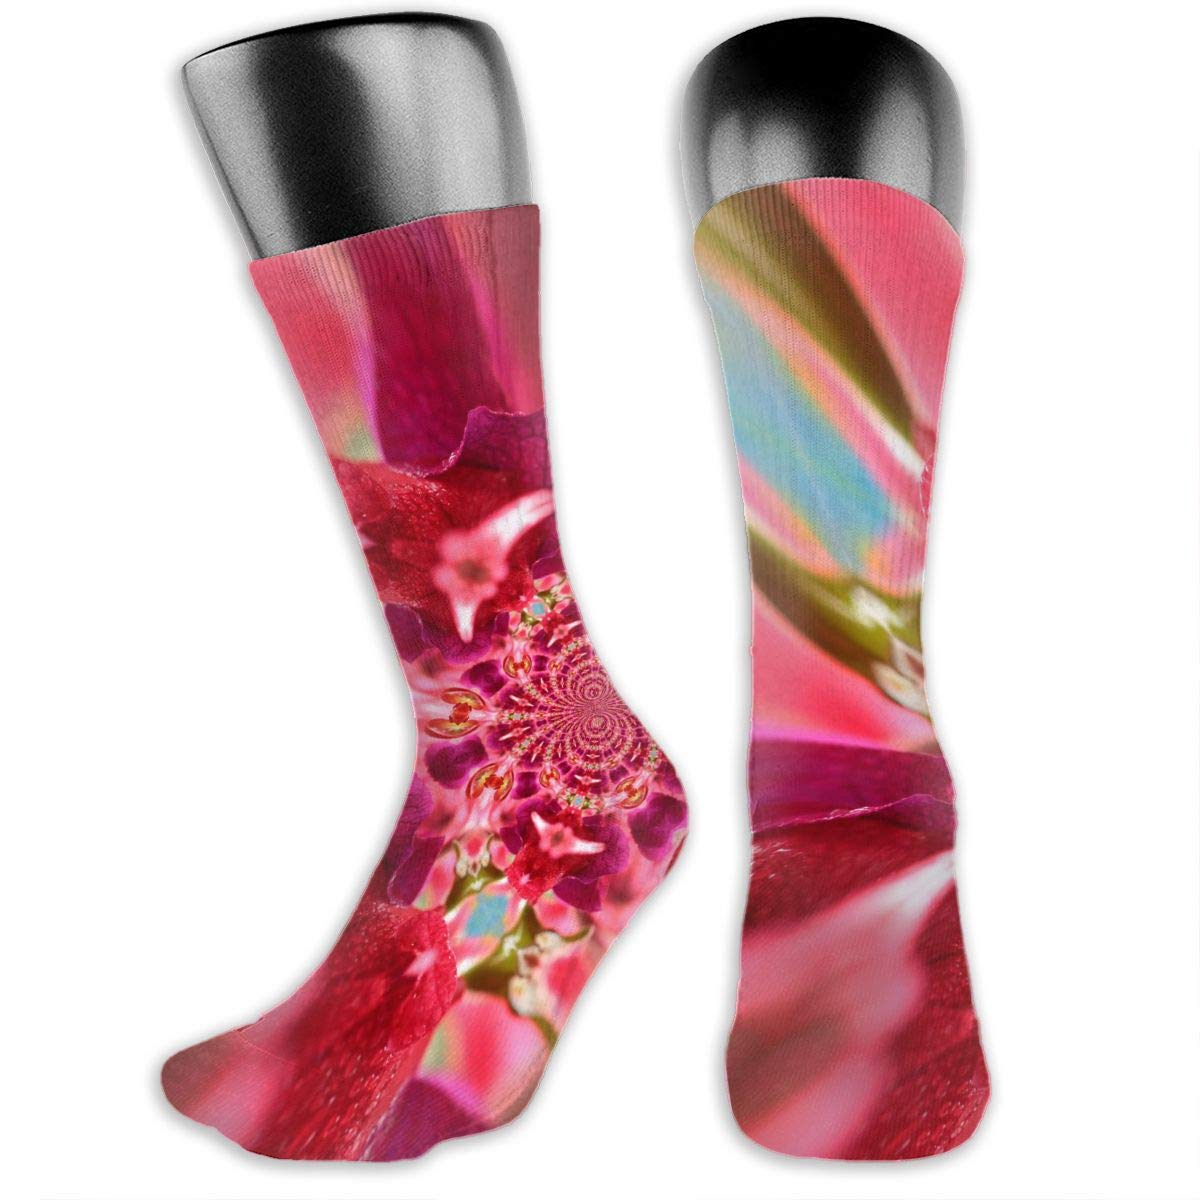 OLGCZM Psychedelic Fractal Tropical Flowers Men Womens Thin High Ankle Casual Socks Fit Outdoor Hiking Trail